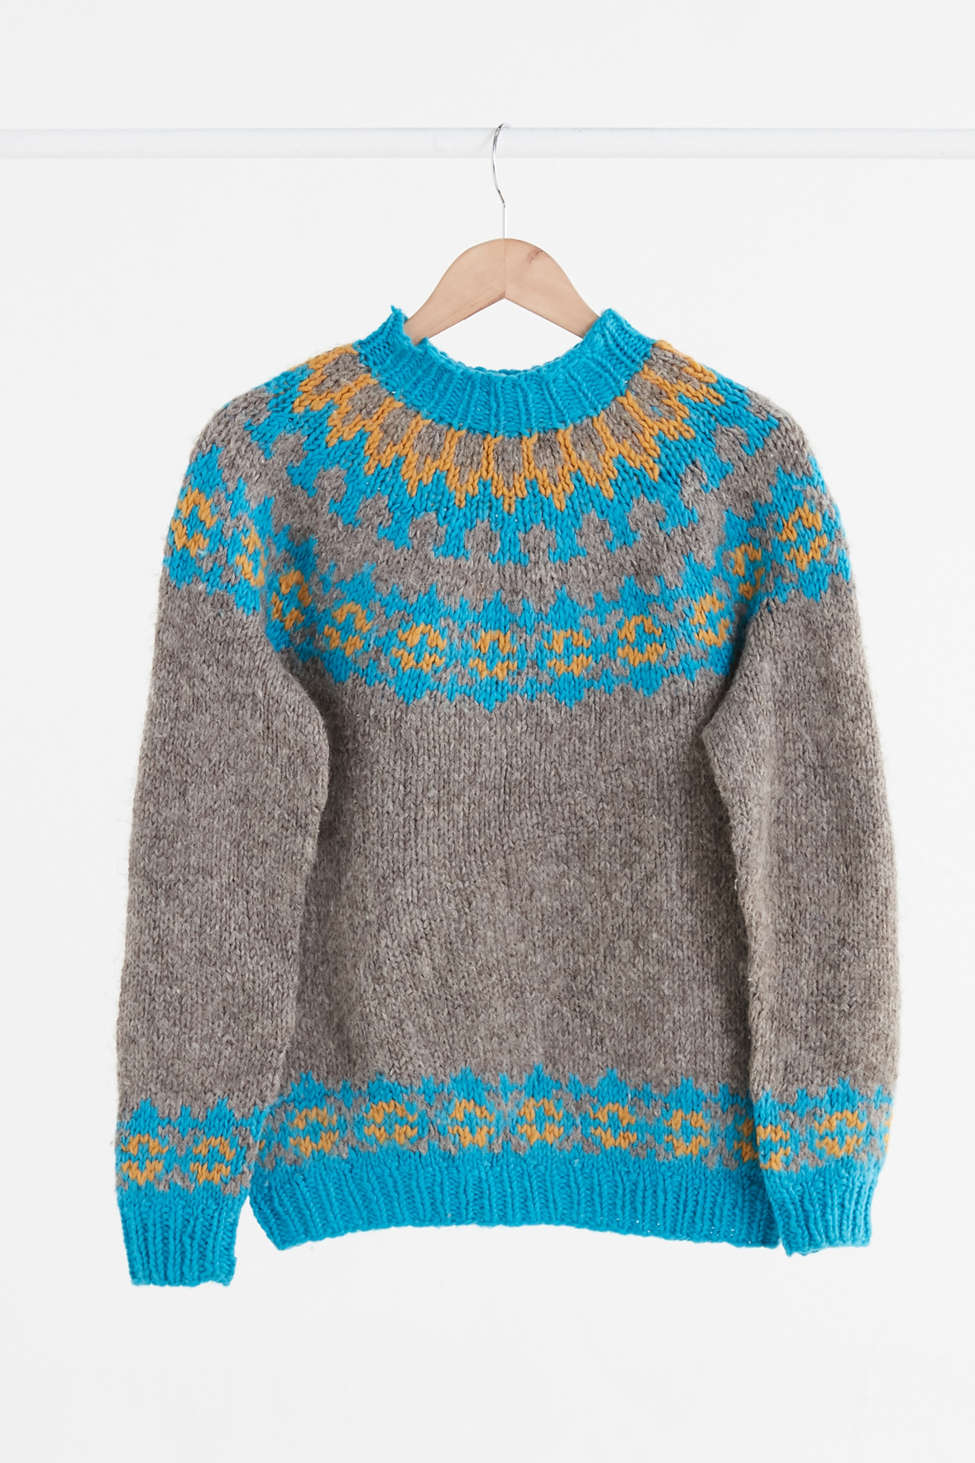 Vintage Grey   Blue Fair Isle Ski Sweater | Urban Outfitters Canada